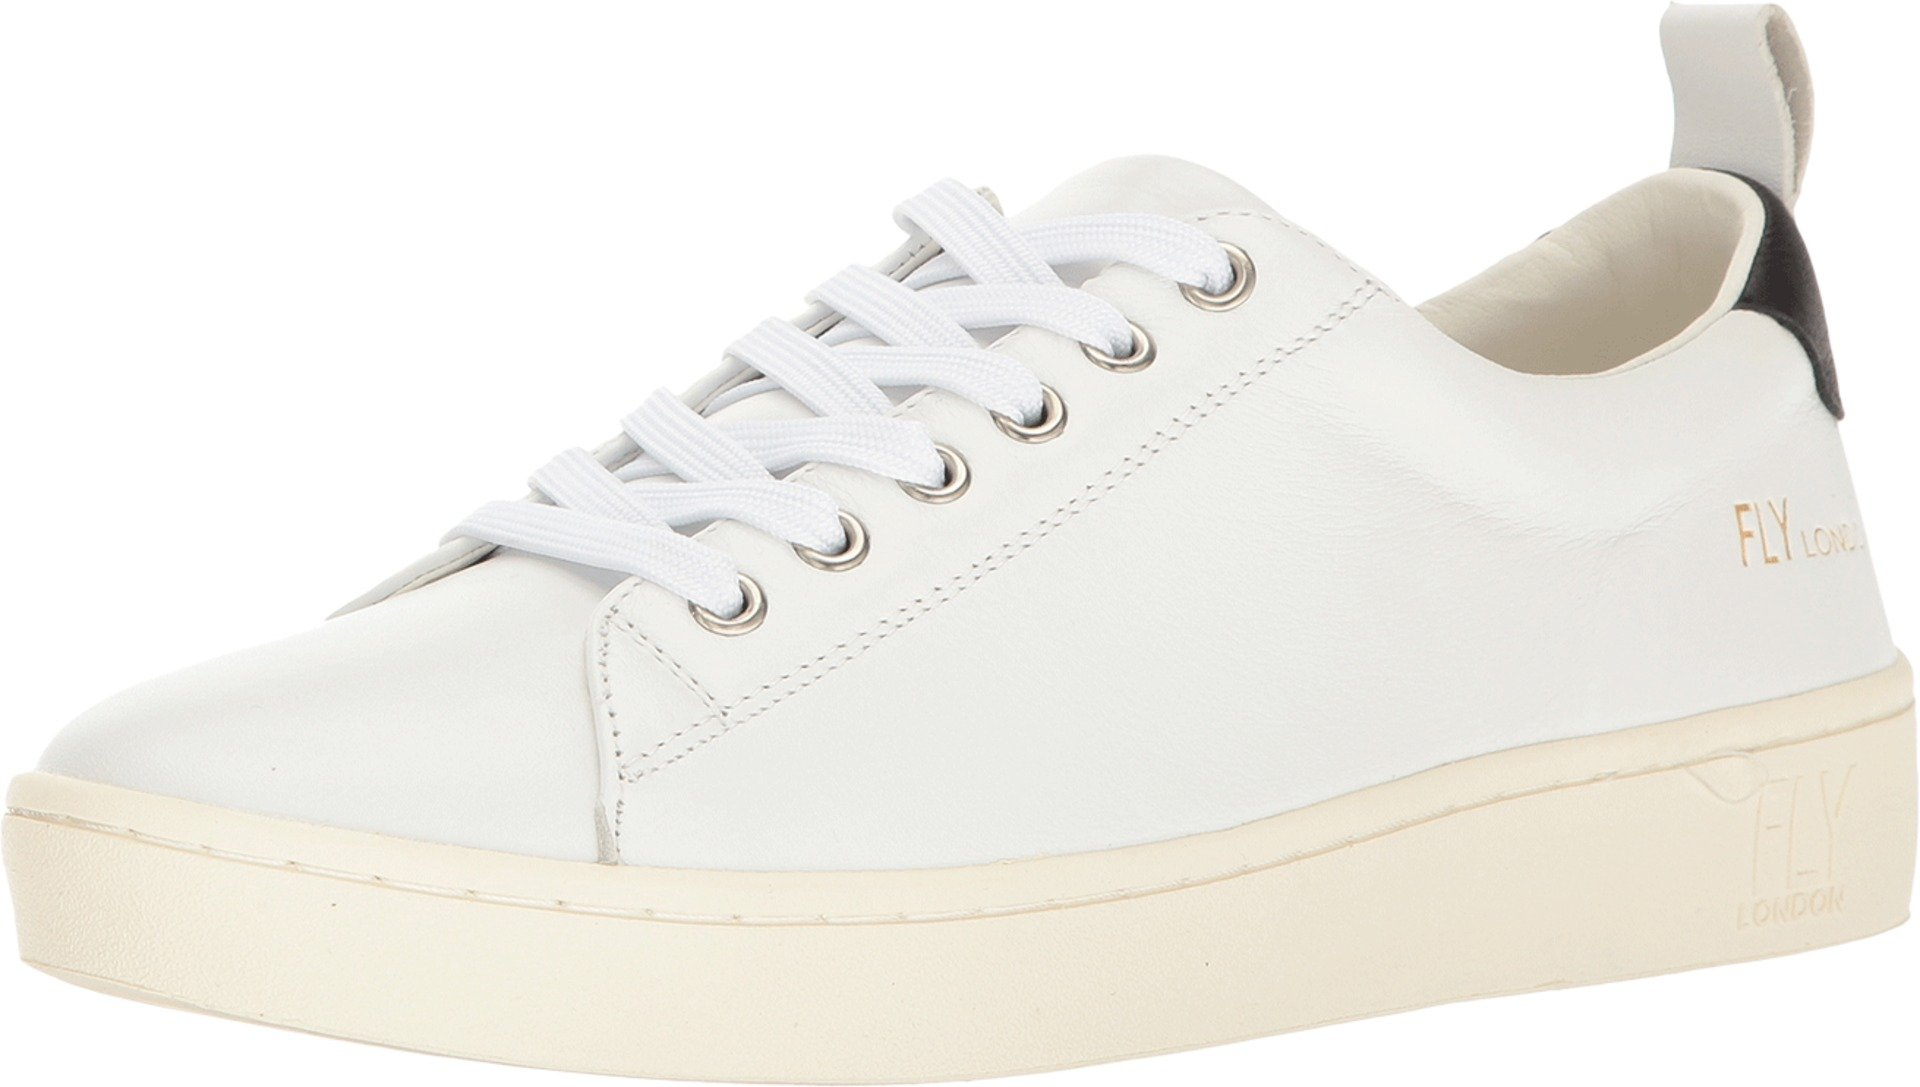 FLY LONDON Women's Maco833Fly Off-White Leather Oxford